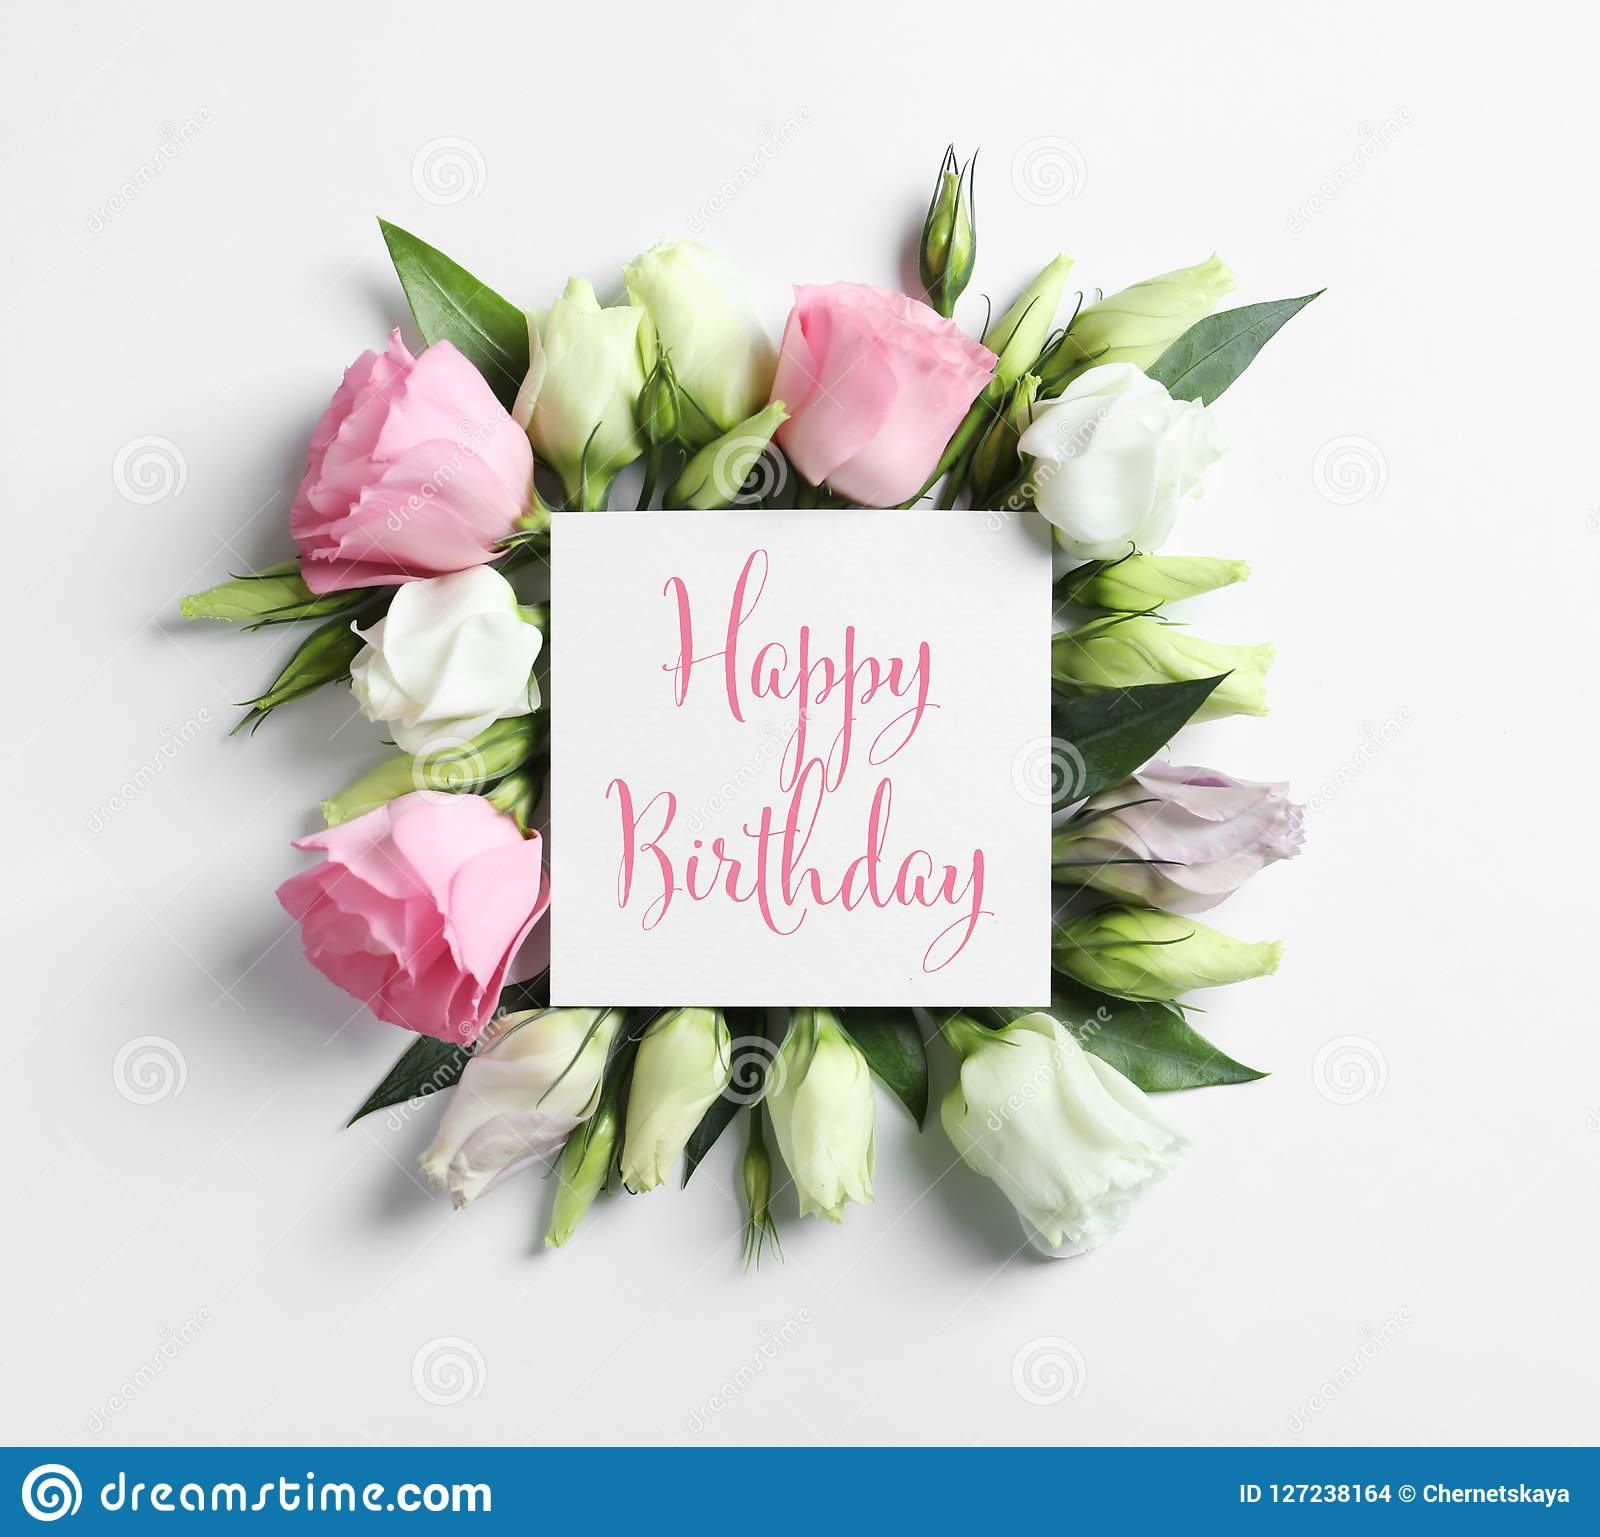 Flat lay composition of Eustoma flowers and card with greeting HAPPY BIRTHDAY